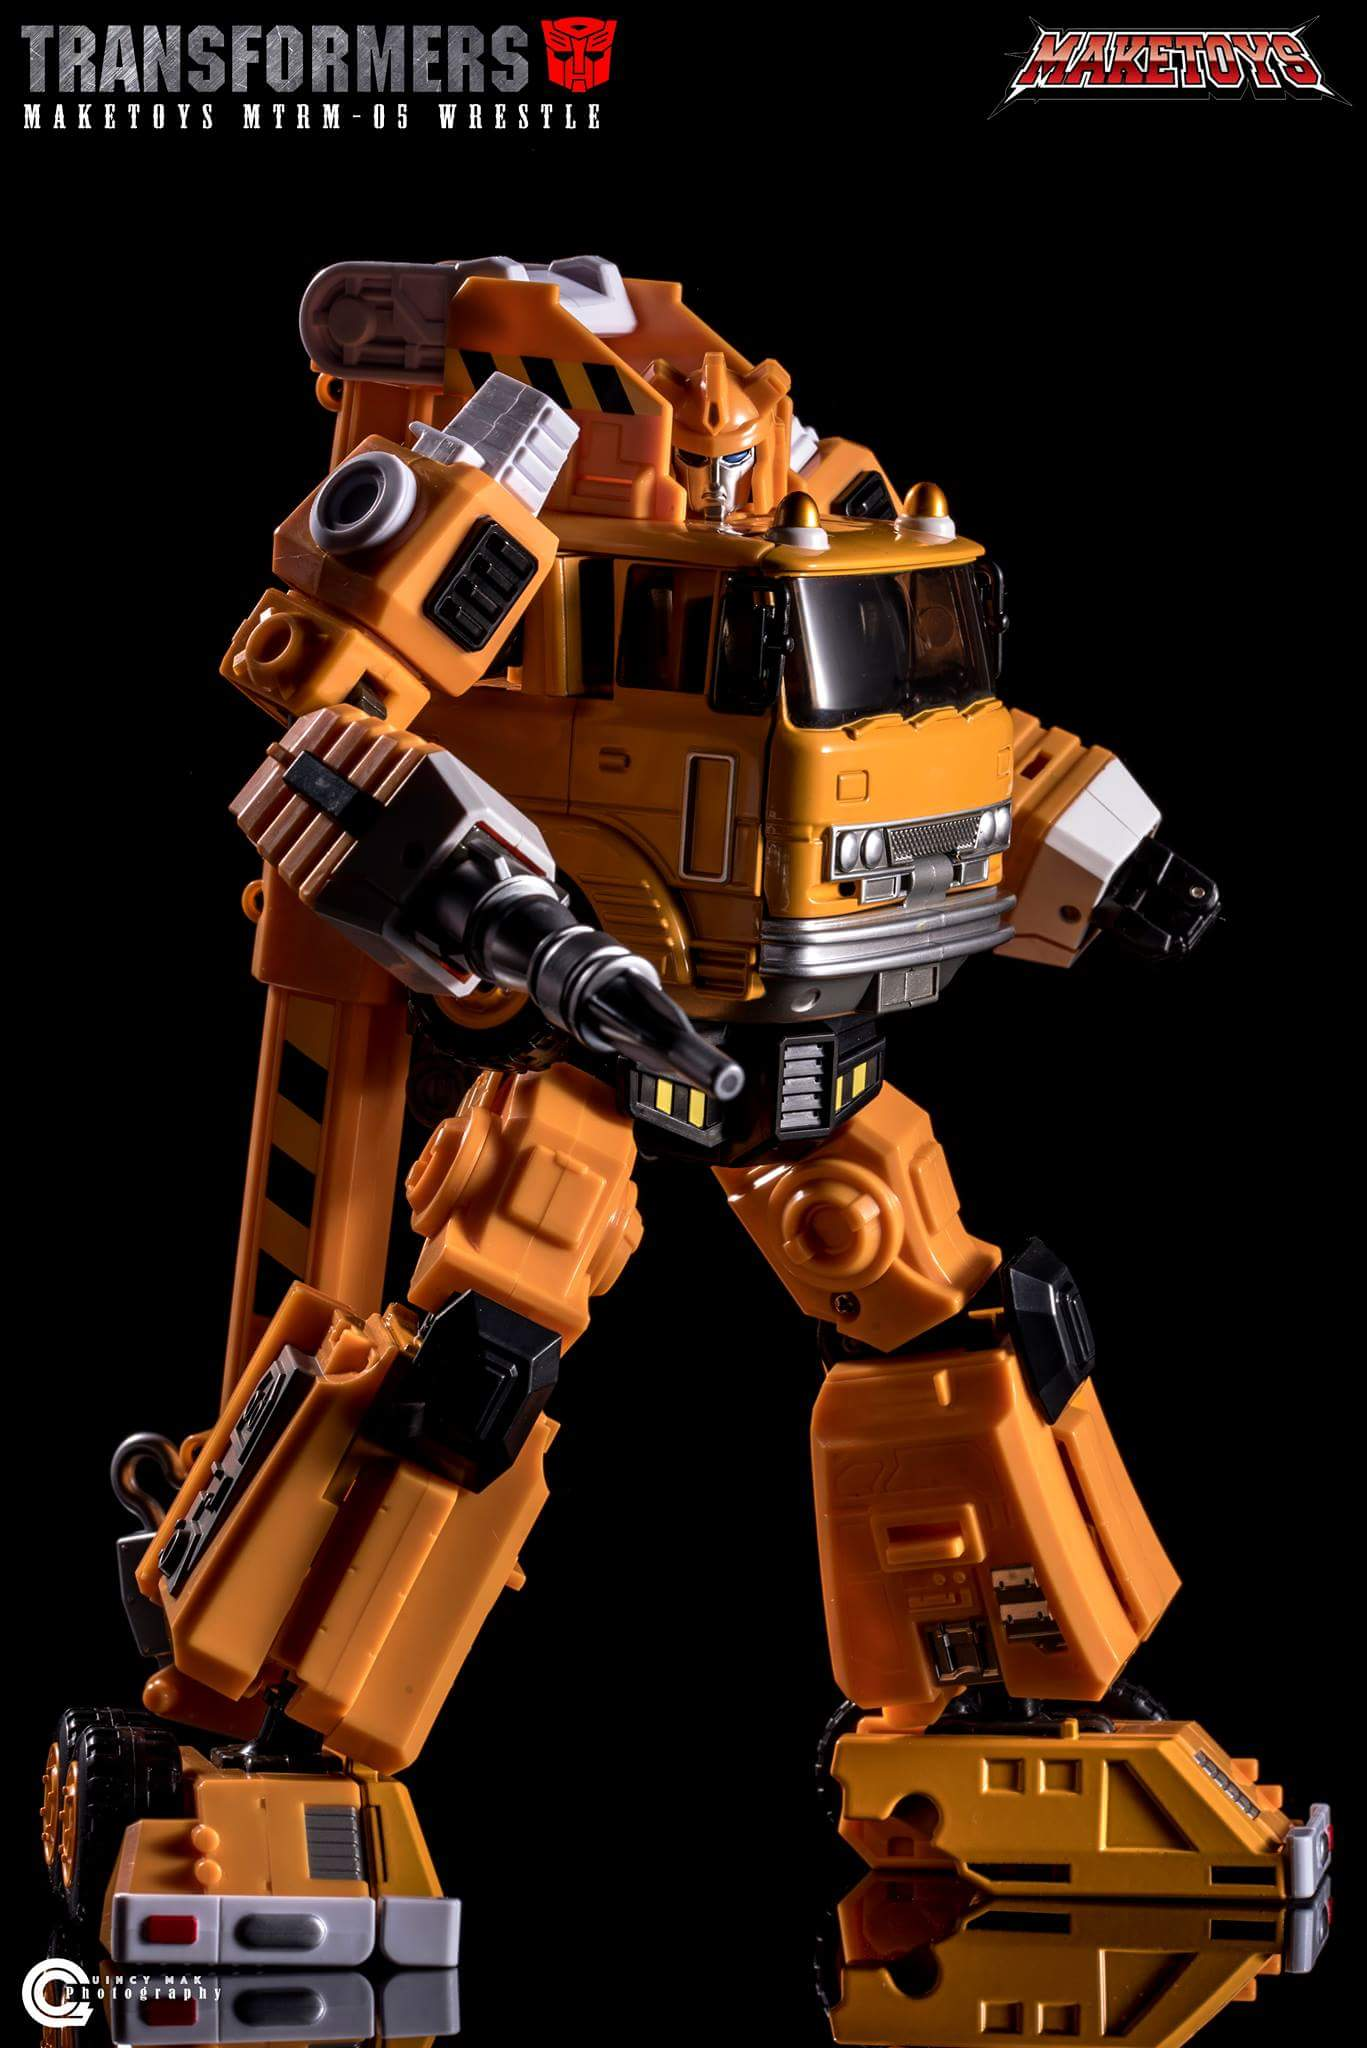 [Maketoys] Produit Tiers - MTRM-03 Hellfire (aka Inferno) et MTRM-05 Wrestle (aka Grapple/Grappin) - Page 3 D3F2h21R